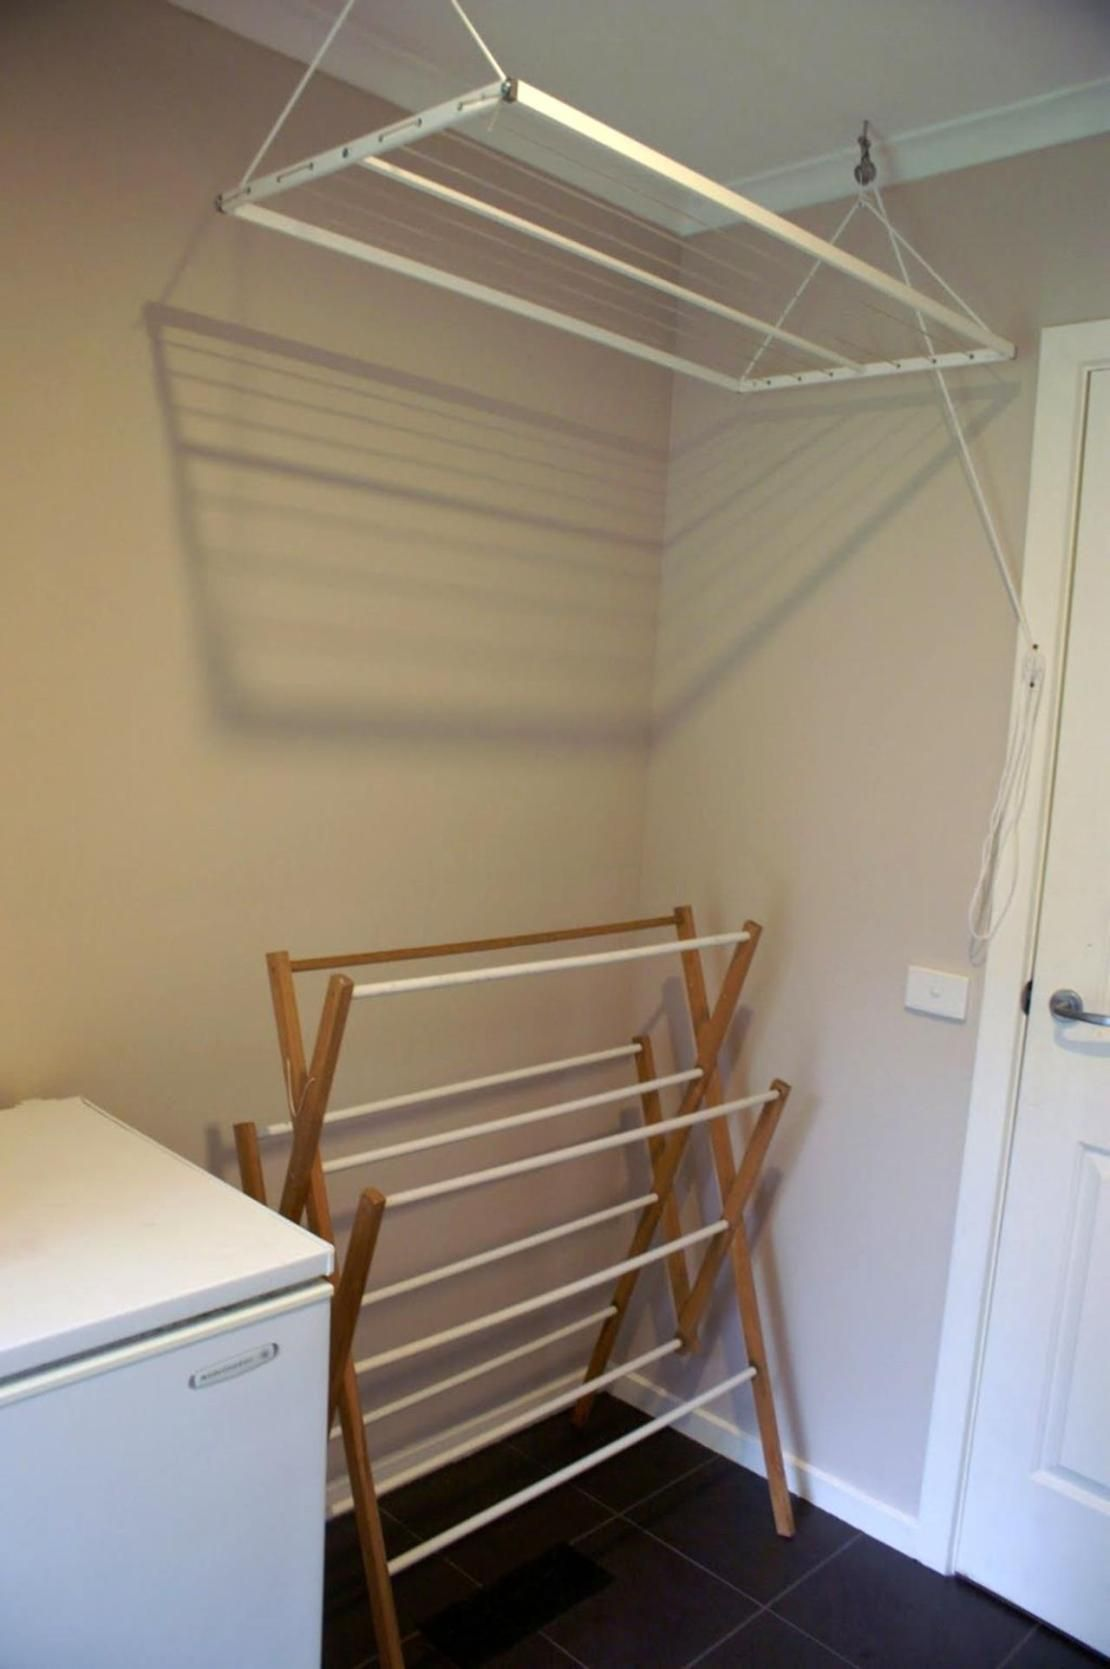 30 Perfect Laundry Room Hanging Rack Ideas Perfect Laundry Room Clothes Drying Racks Hanging Racks